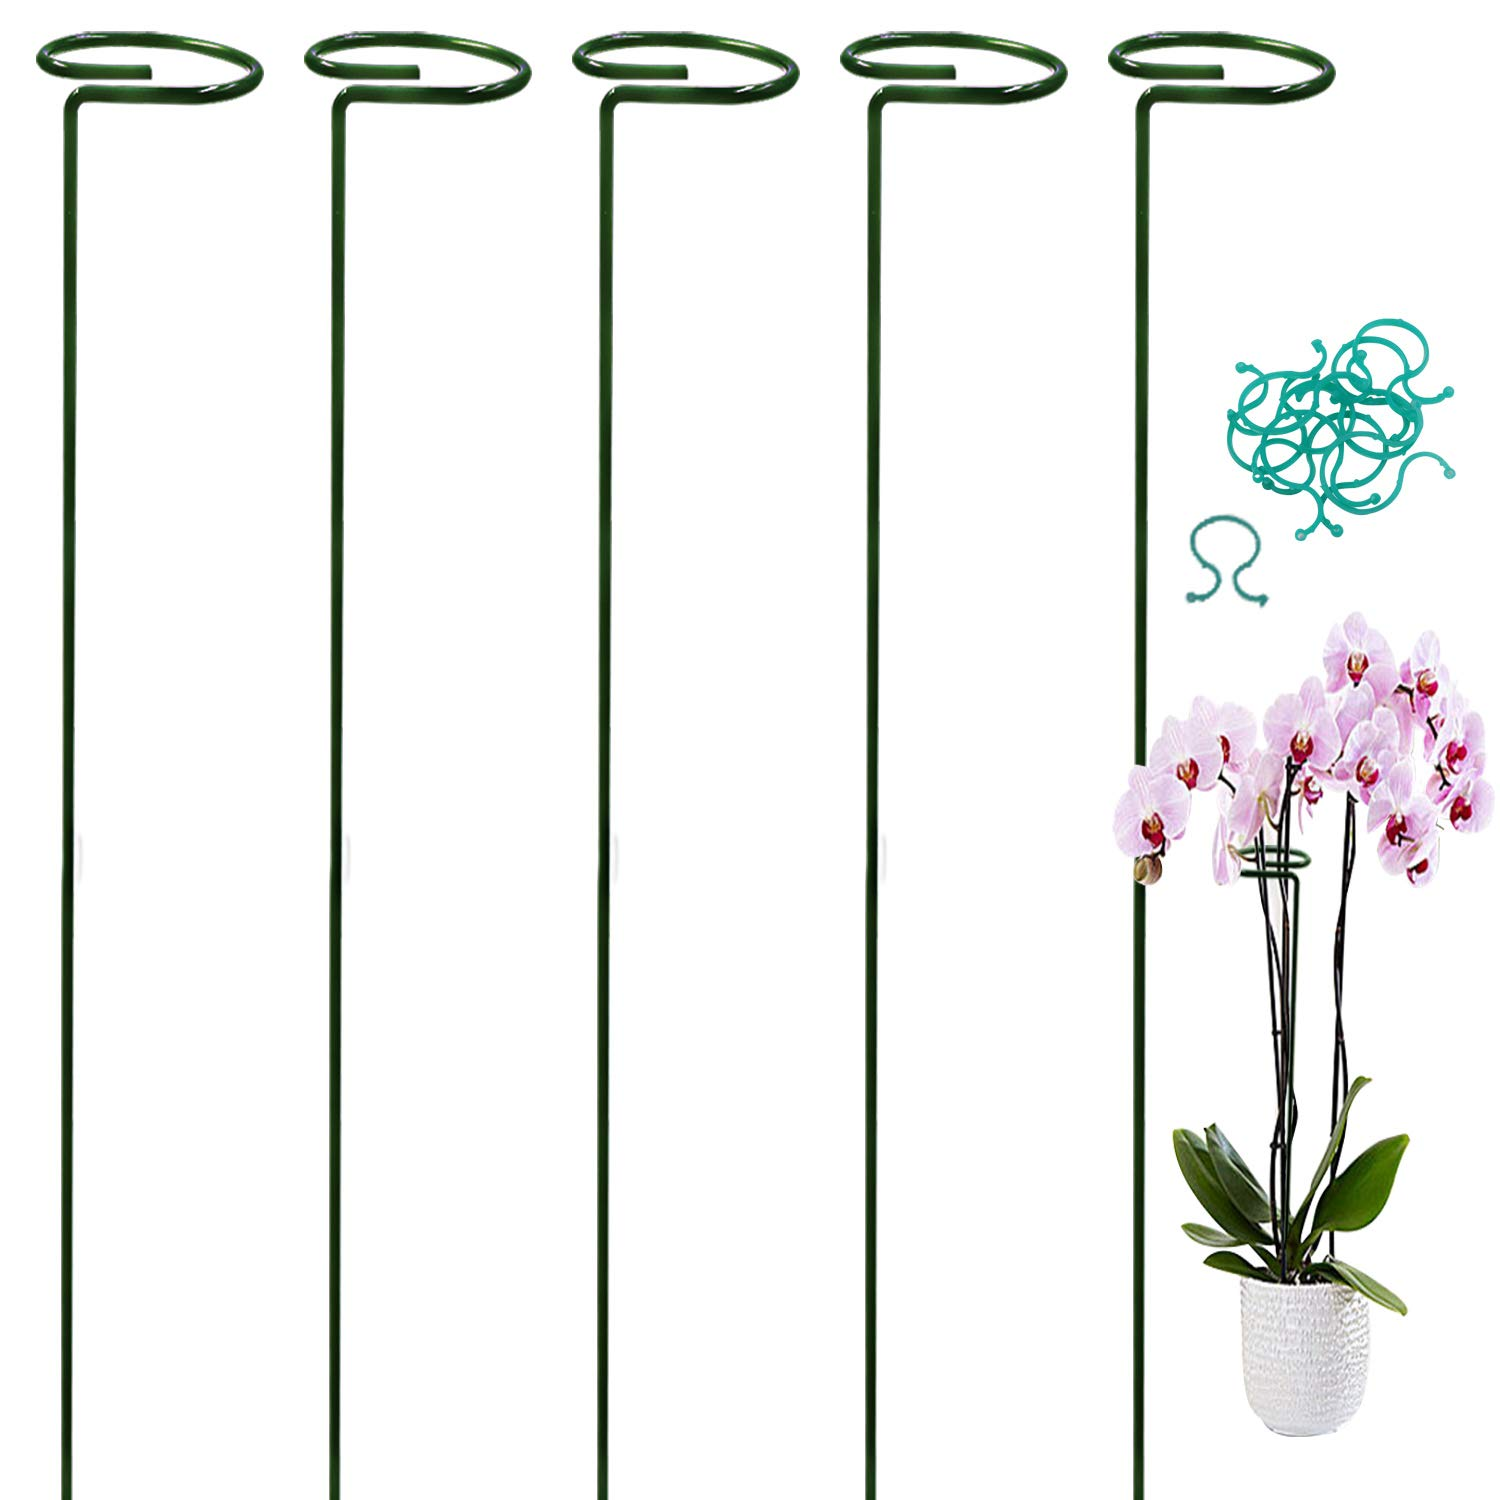 """HiGift 5 Pack Single Garden Plant Stem Support Stakes with 2.5"""" Hoop, with 10 pcs Flower Clips Plant Locks for Securing Plants, 18"""""""